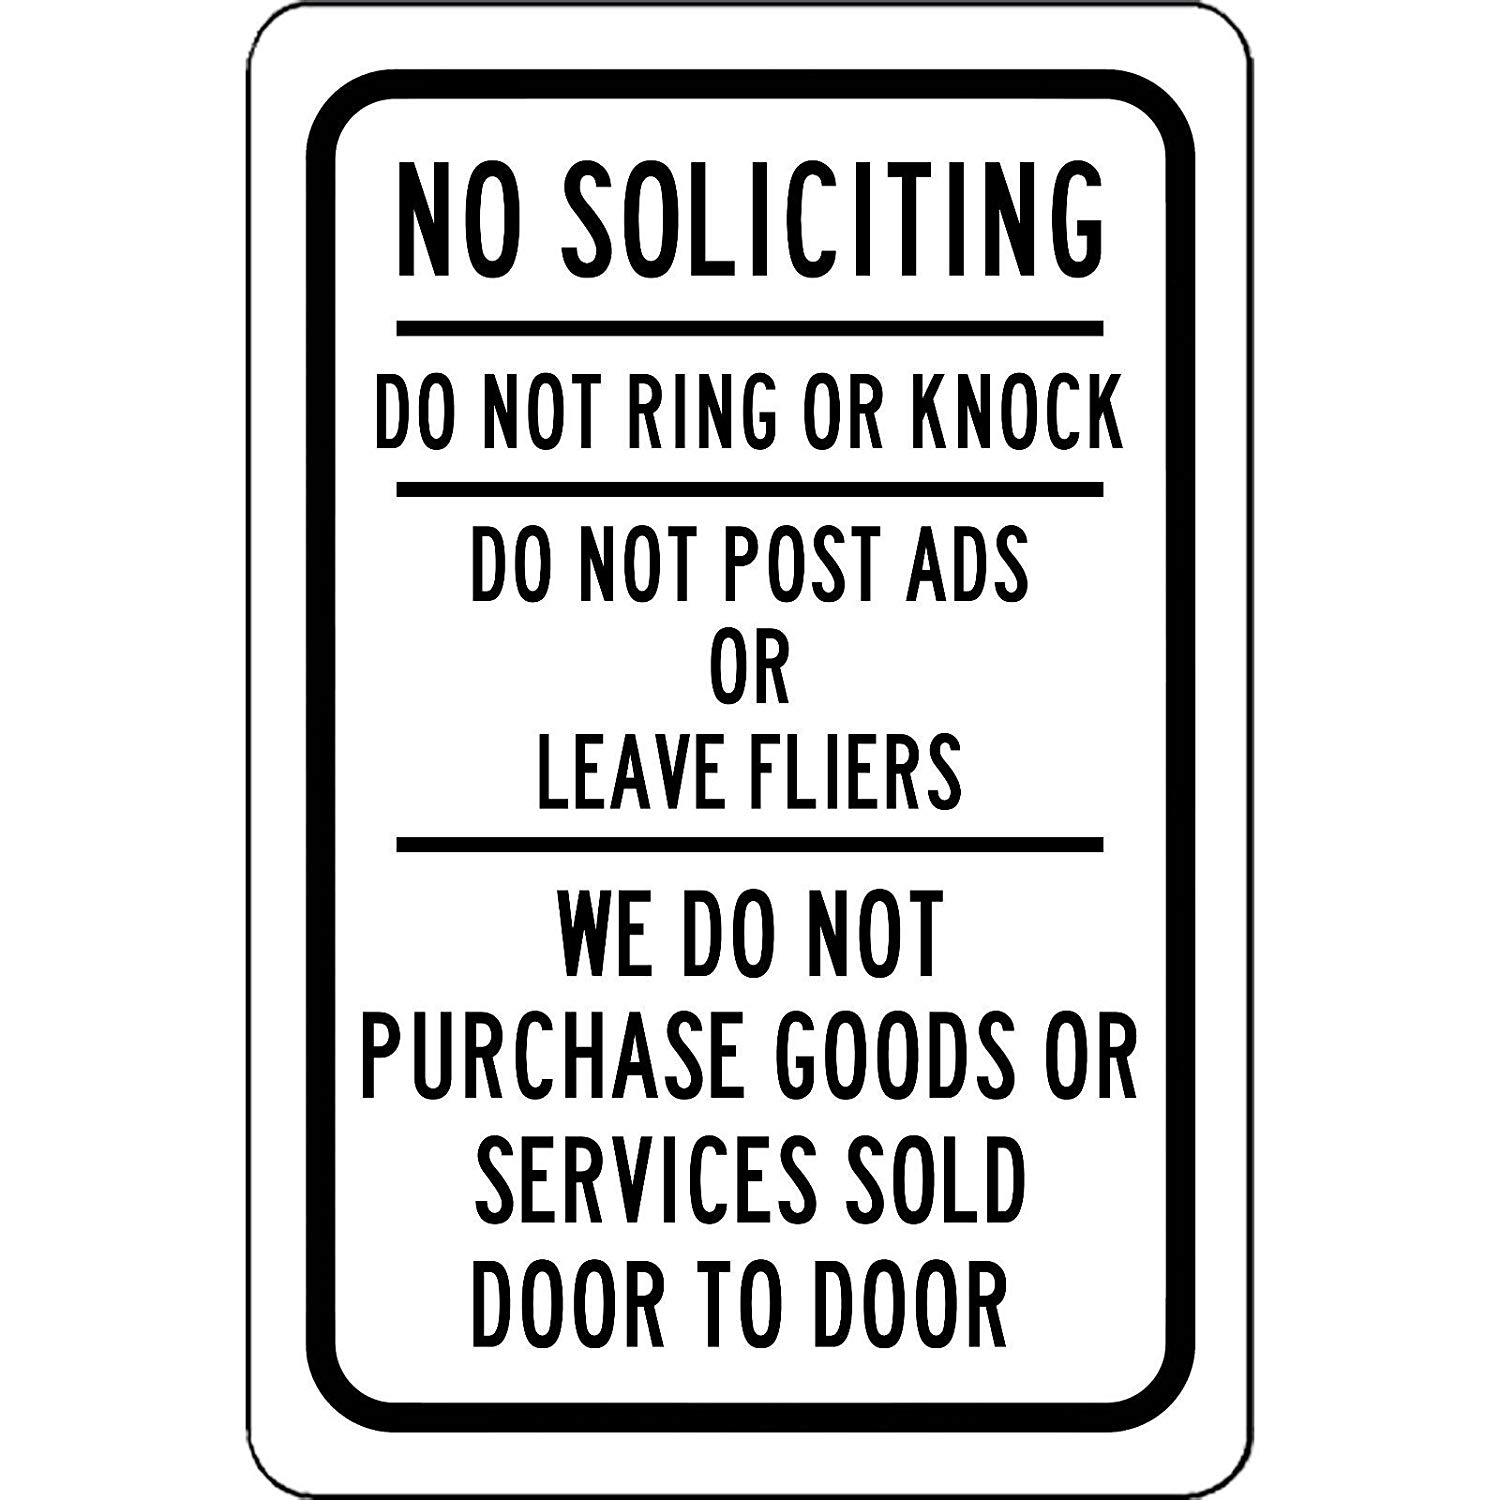 photo regarding No Soliciting Printable identify Economical Printable No Soliciting Doorway Indication, track down Printable No